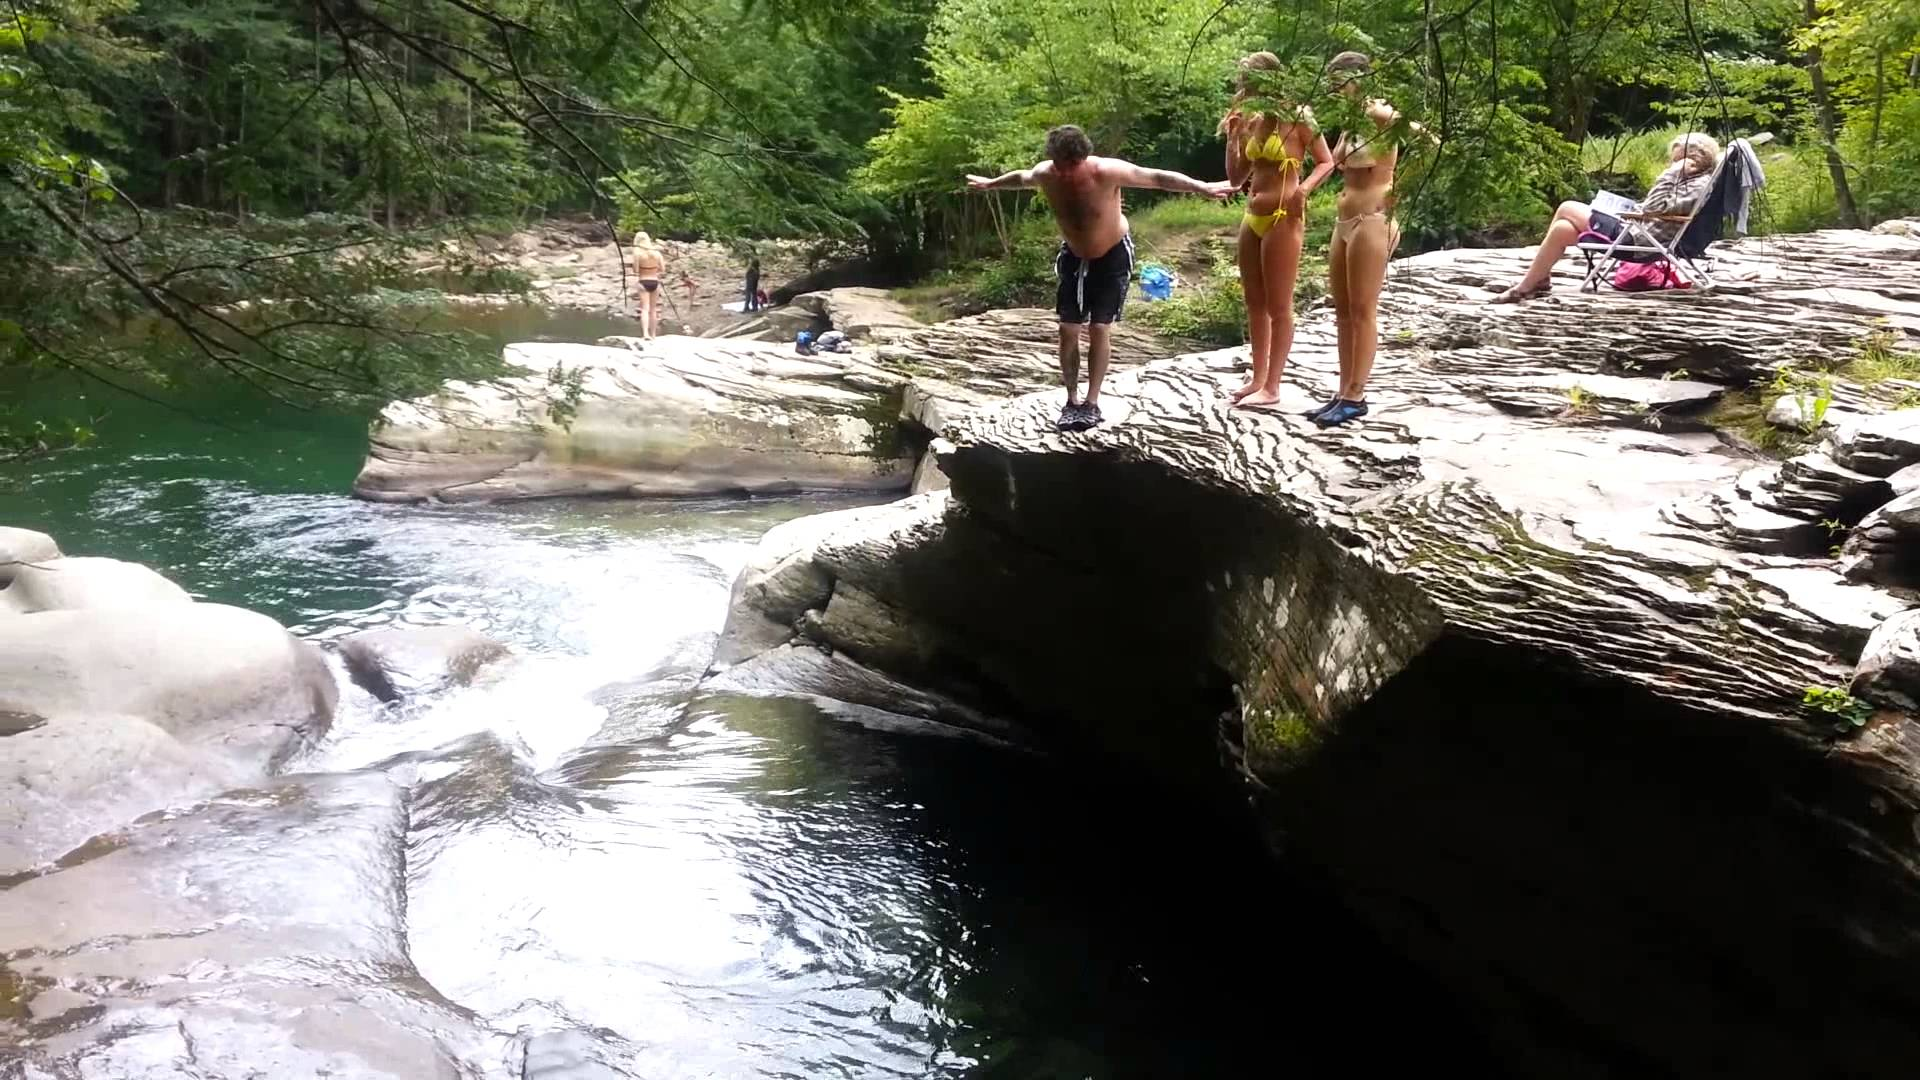 jimmy vanderveer at 2nd falls ralston pa - YouTube